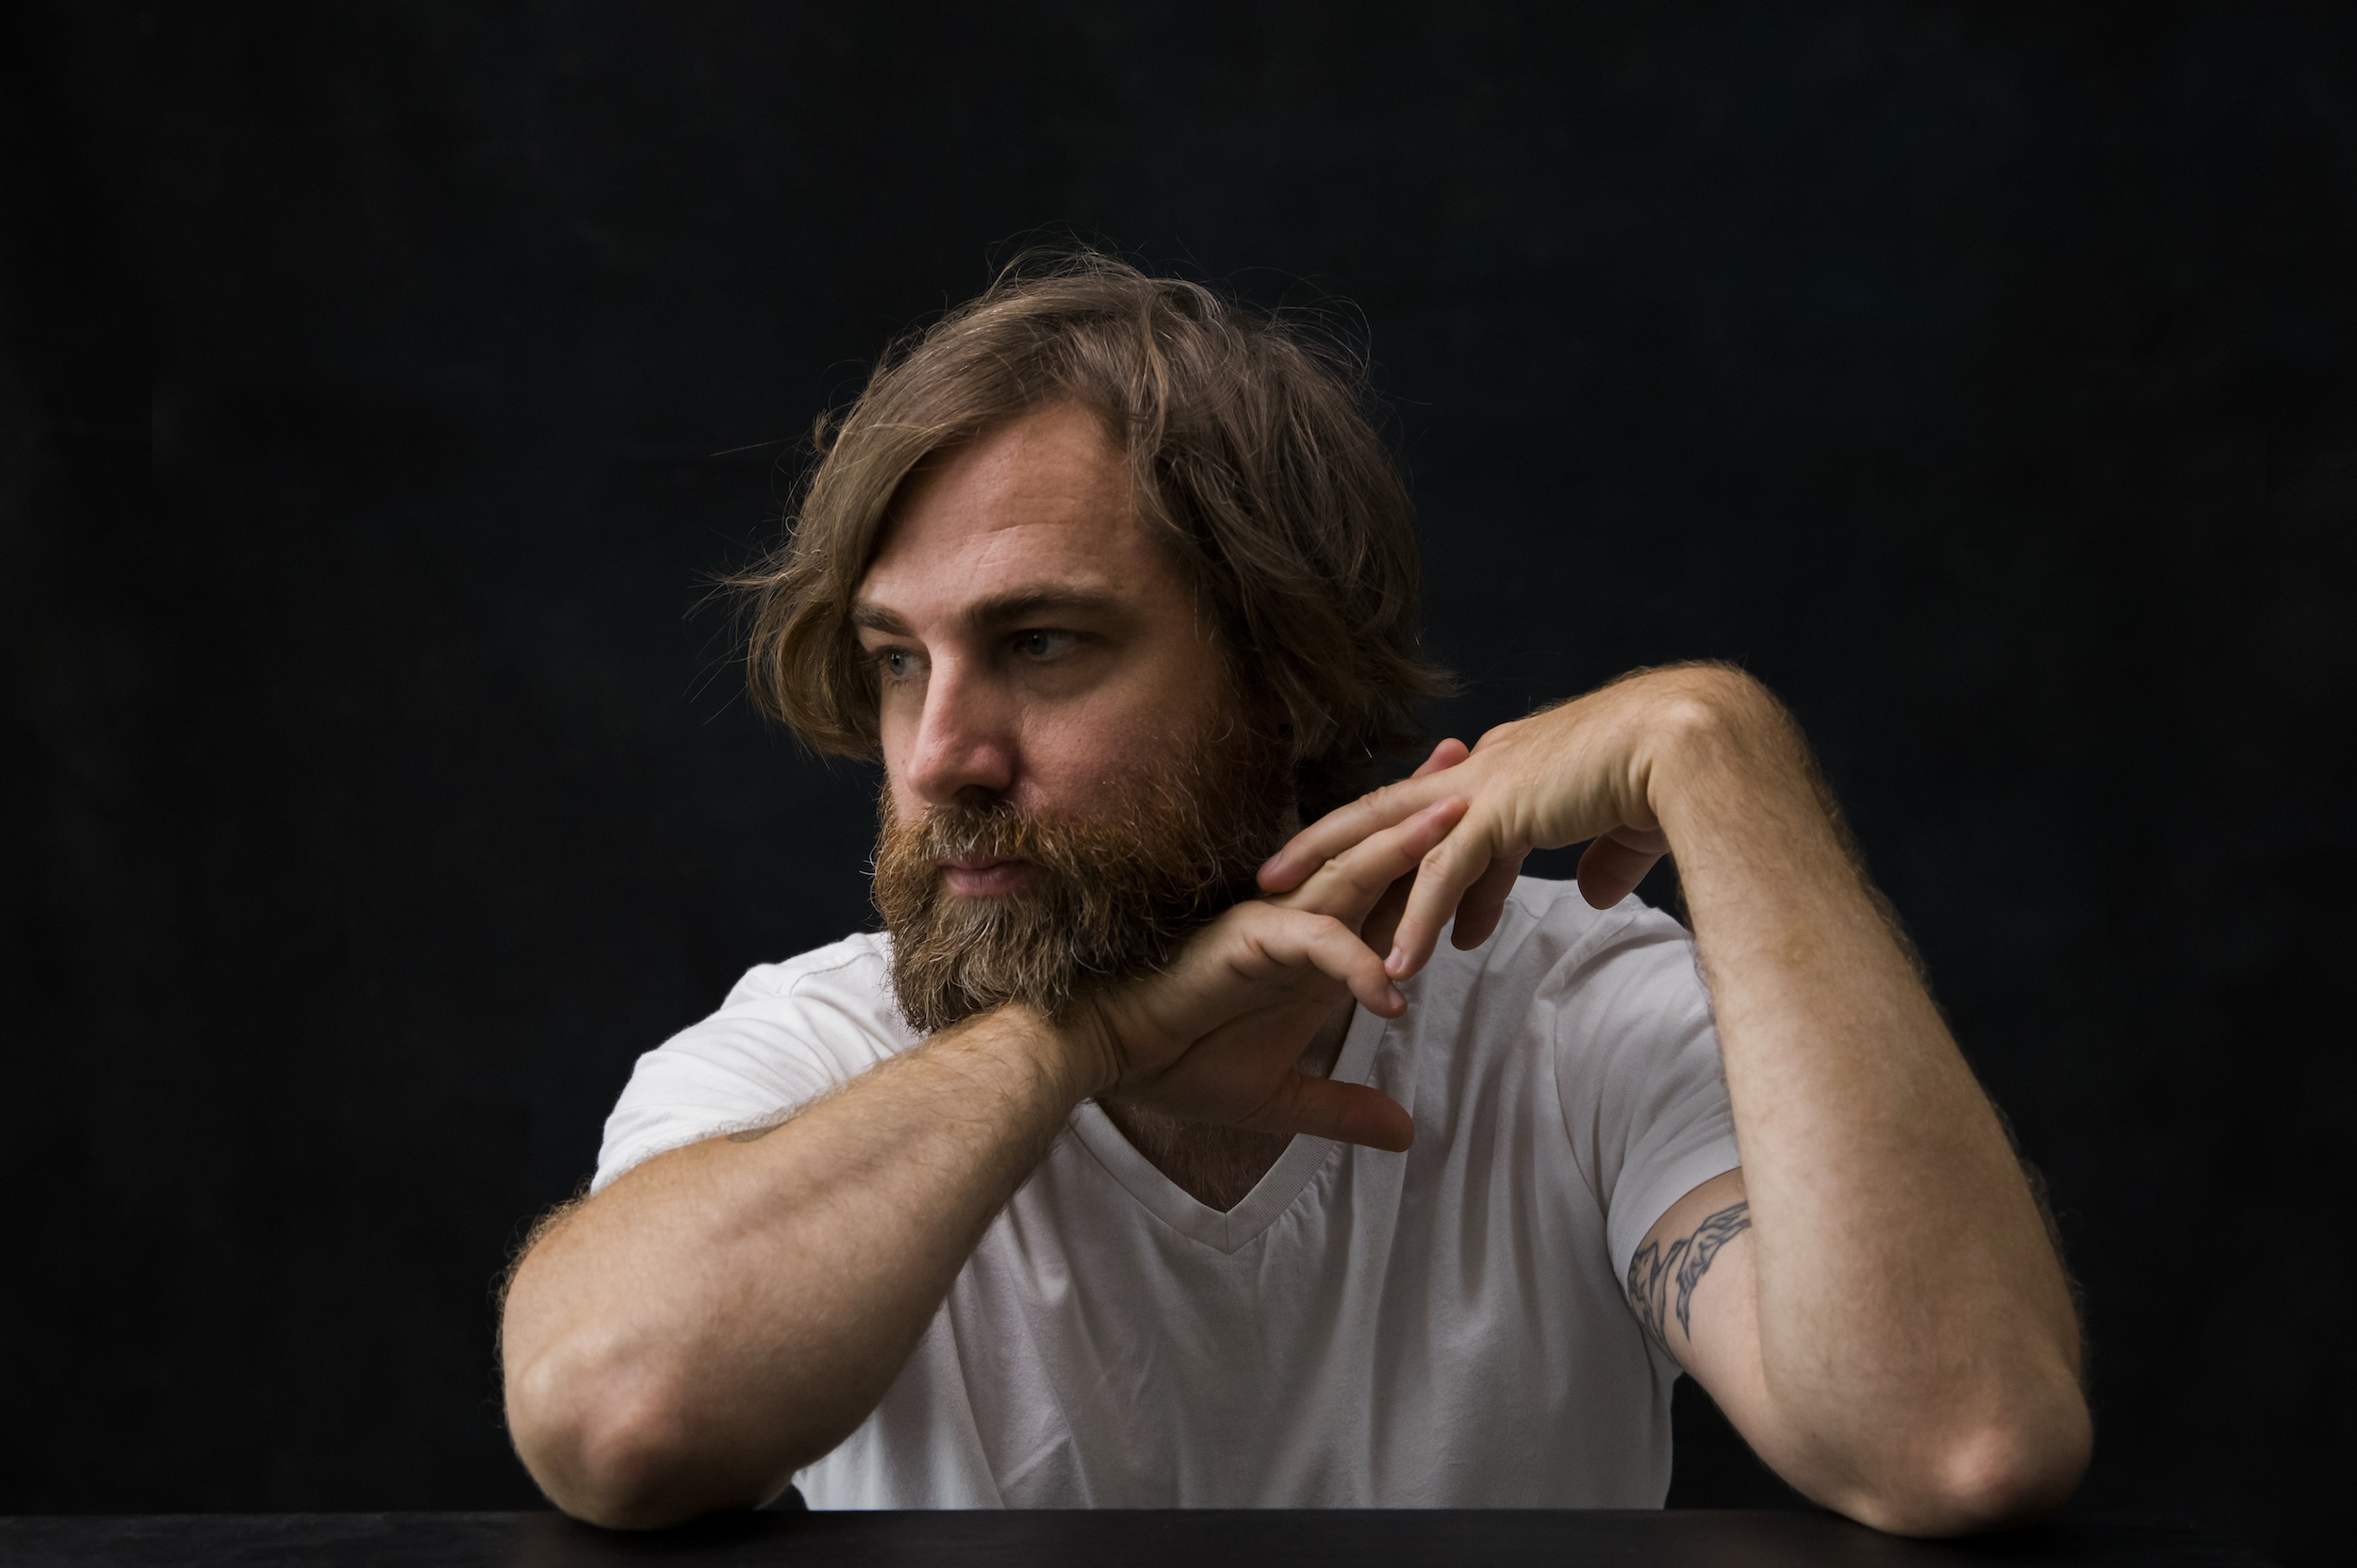 Josh Pyke's New Album 'Rome' Out Soon + Fans First Tour Details